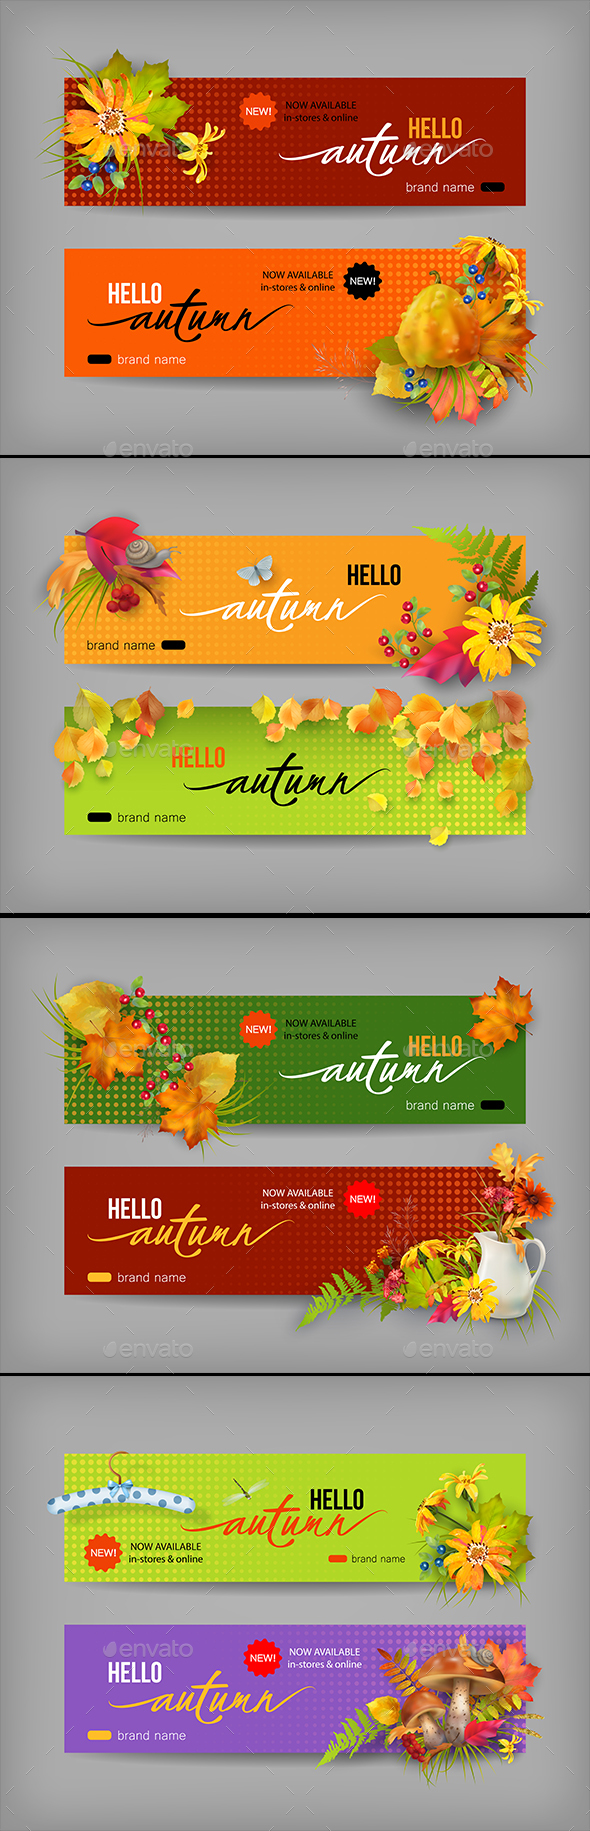 Autumn Advertising Banner - Seasons Nature